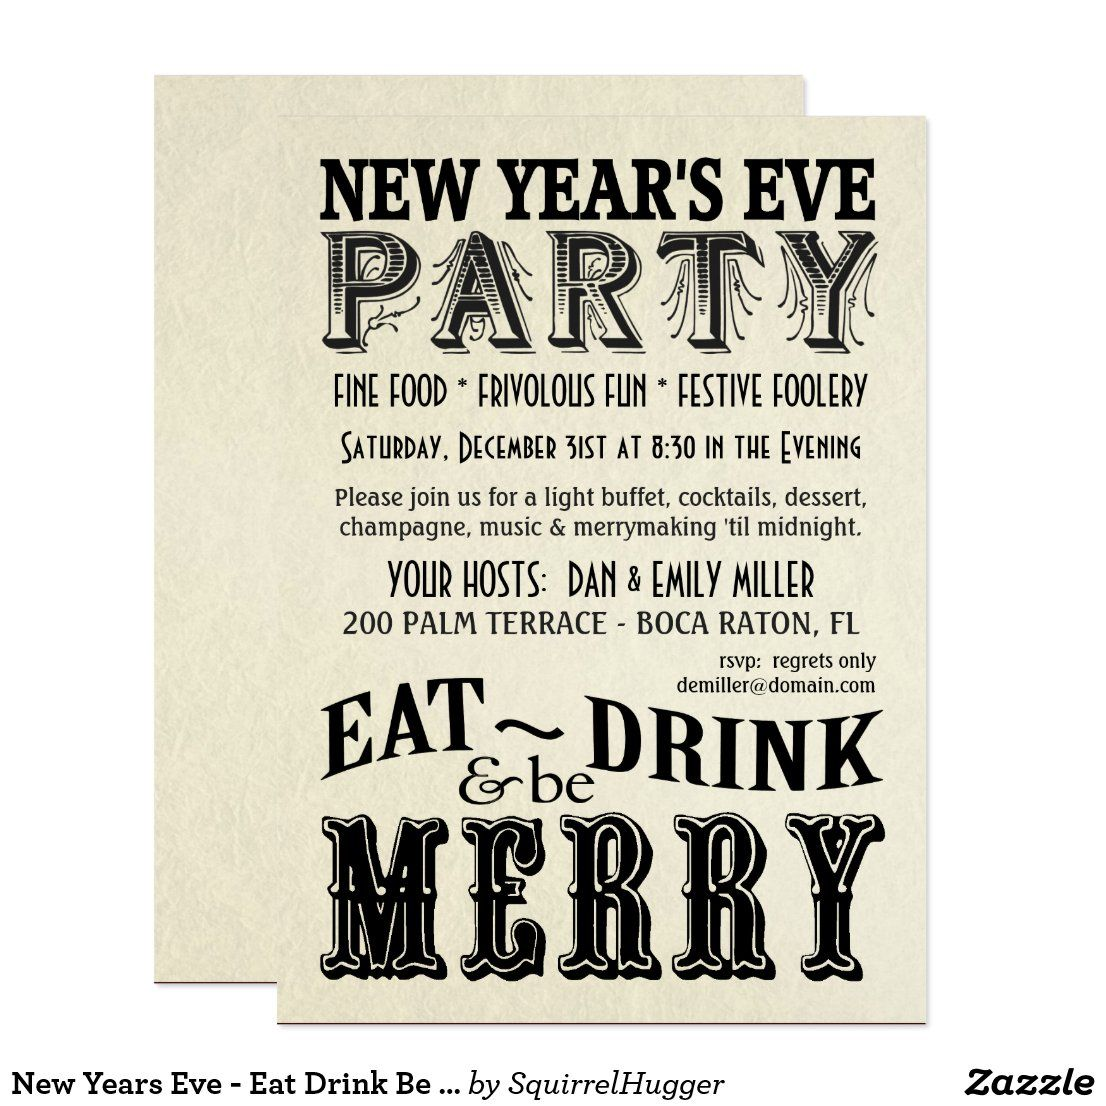 New Years Eve Eat Drink Be Merry Invitations Zazzle Com Invitations Holiday Party Invitations New Years Eve